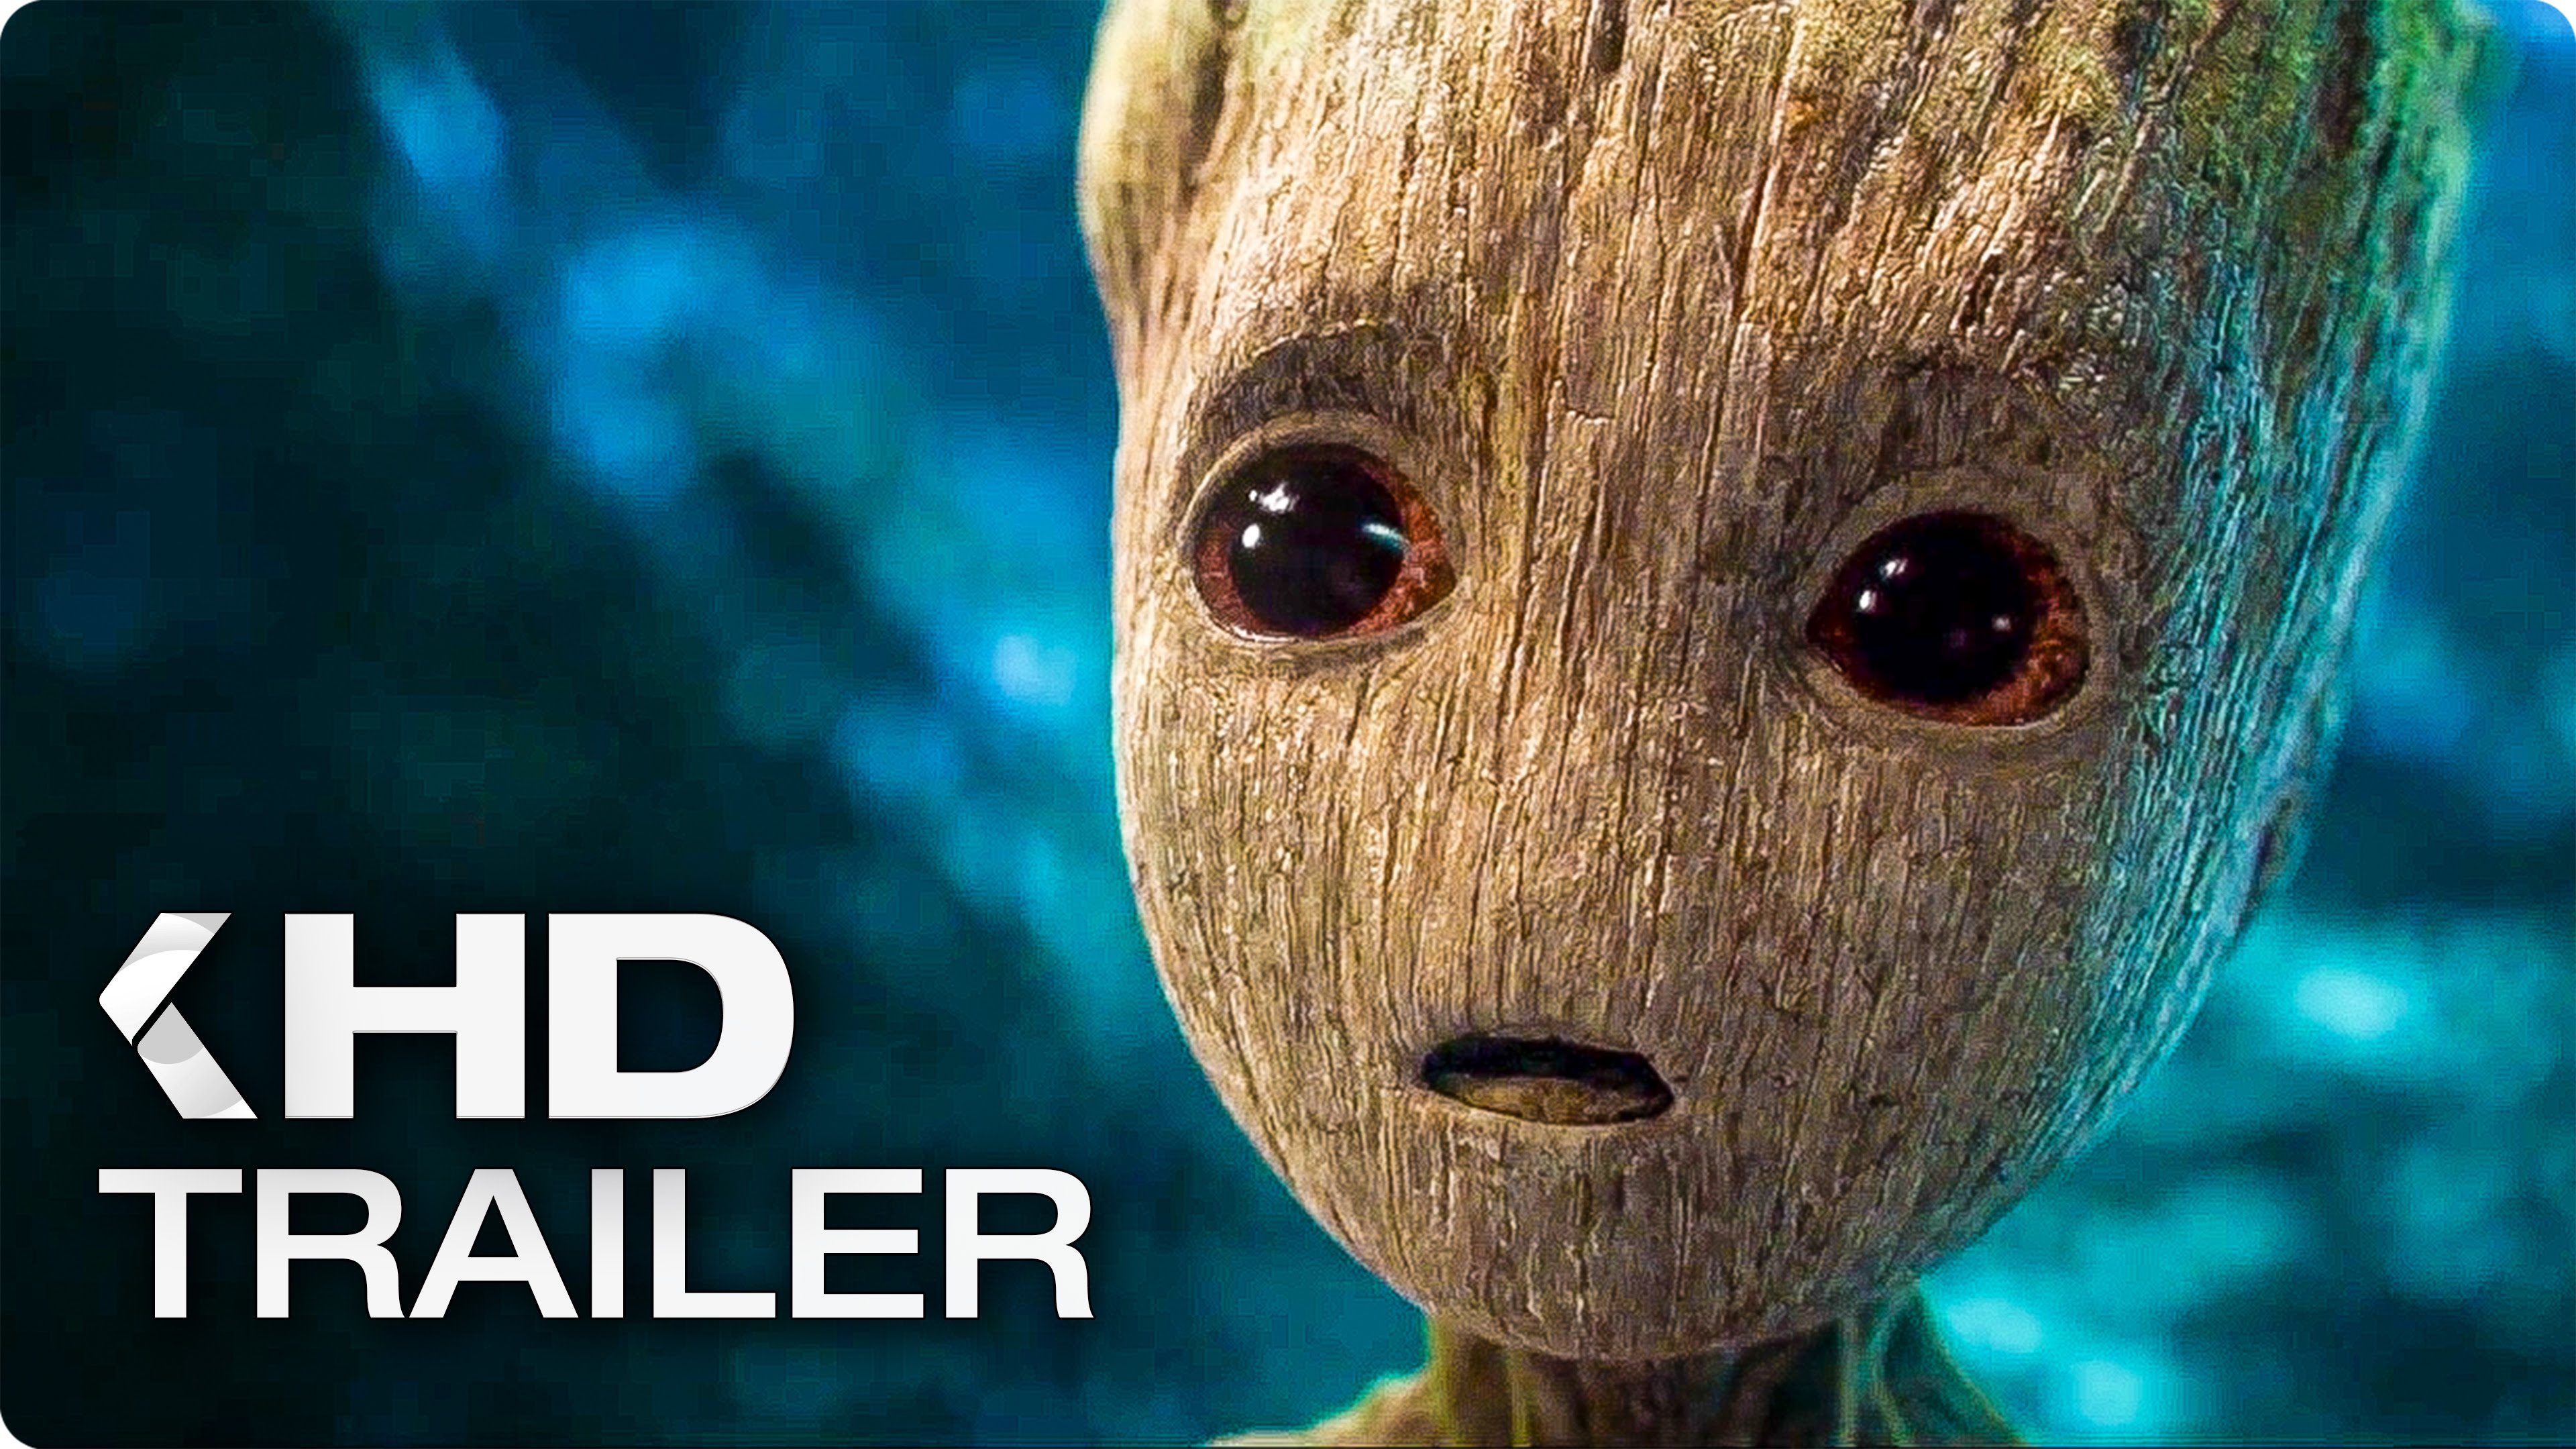 Movie review: 'Guardians of the Galaxy Vol. 2' a worthy follow-up and tons of cosmic fun